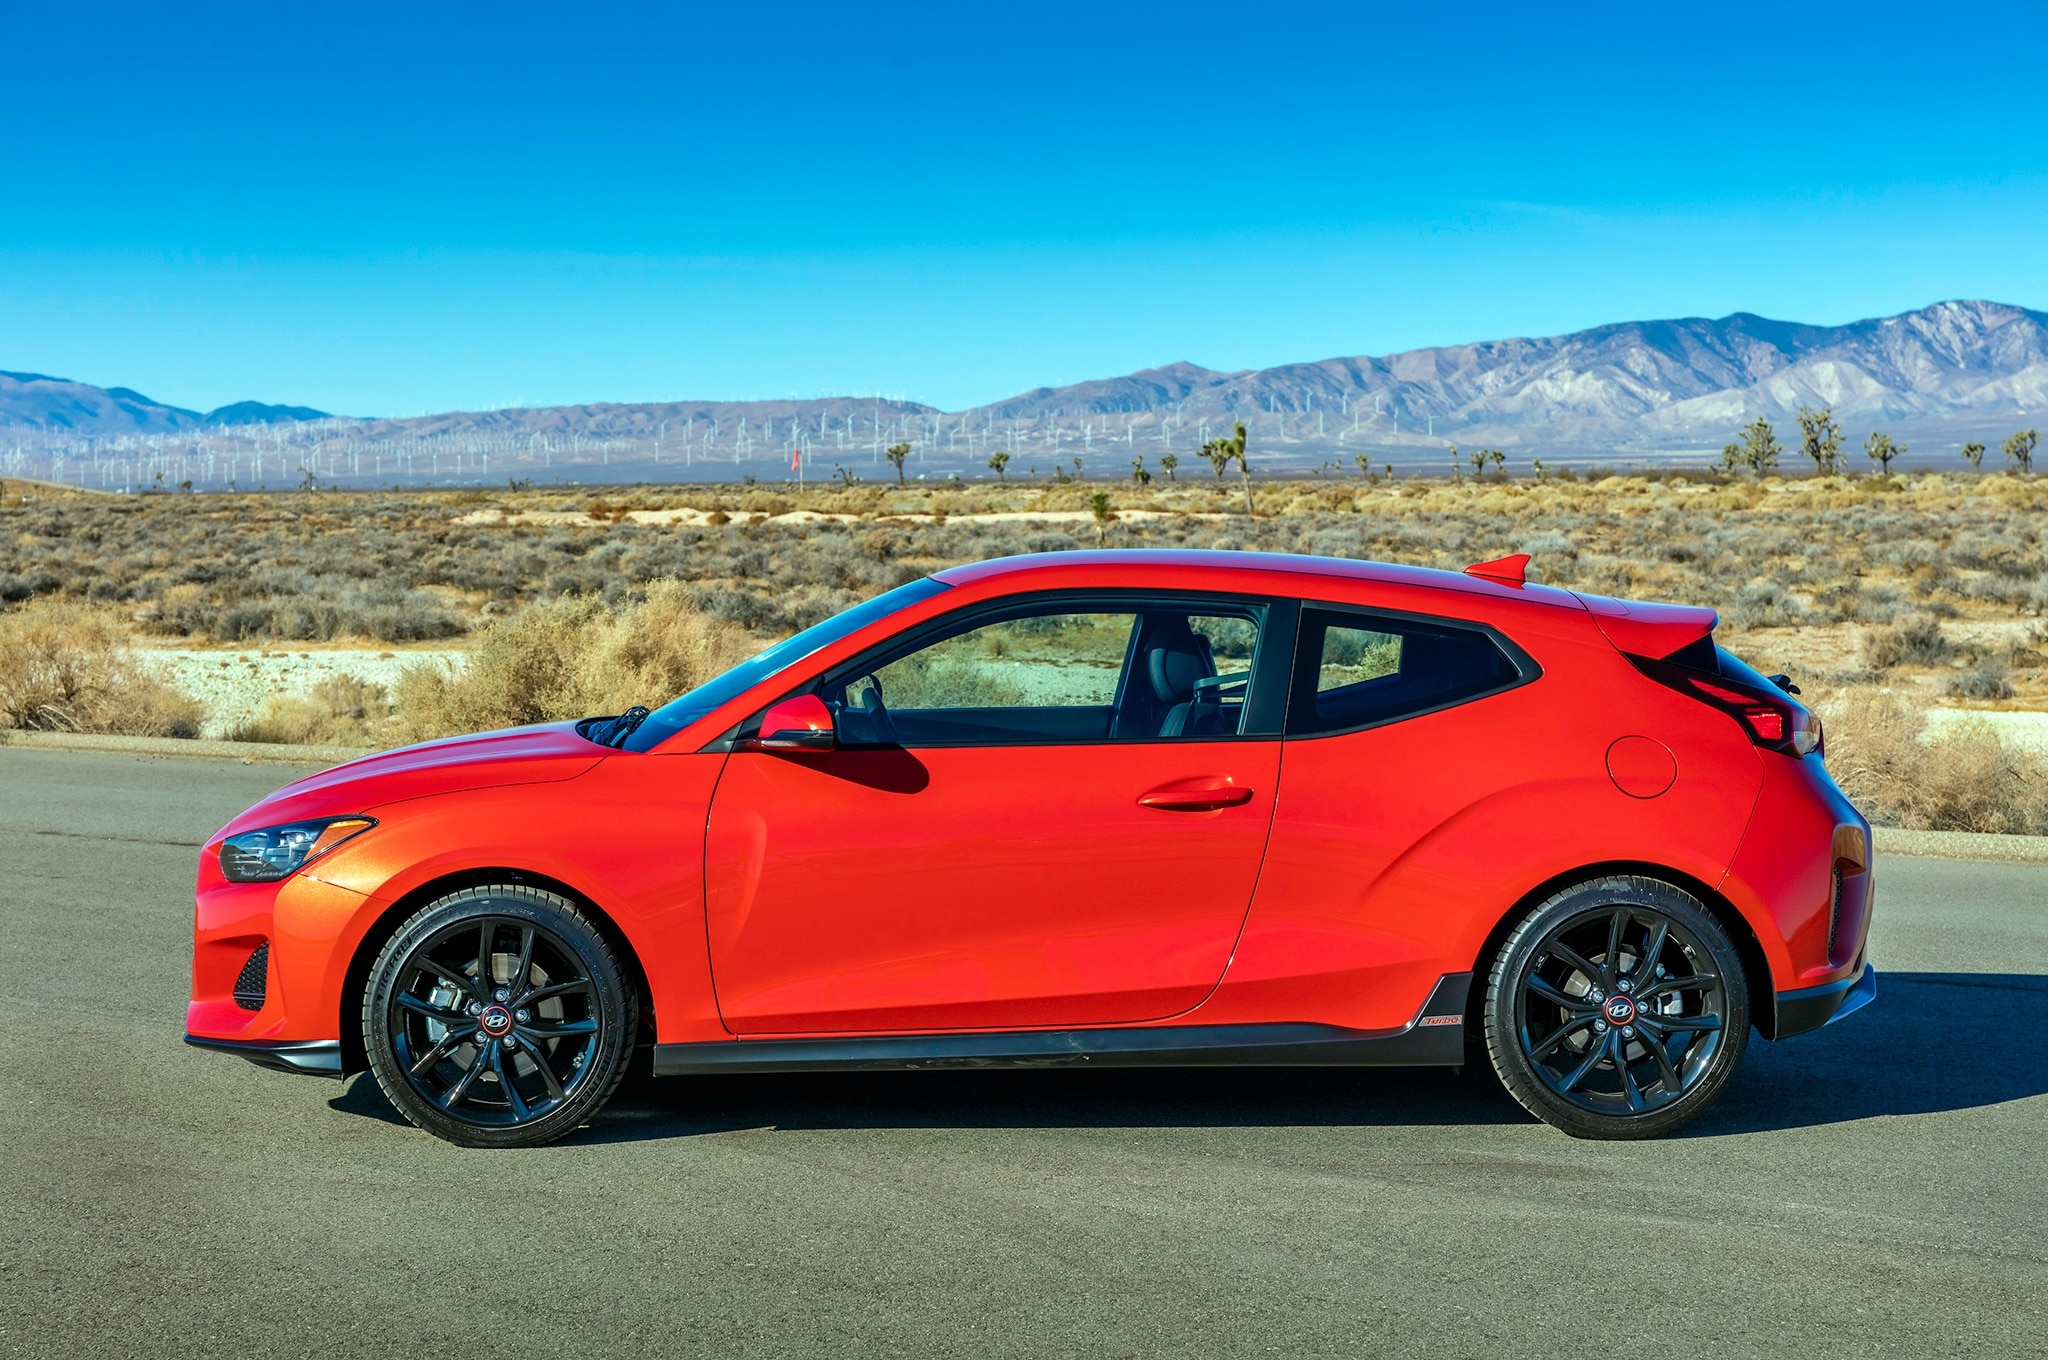 2019 Hyundai Veloster R Spec Quick Take Review Automobile Magazine